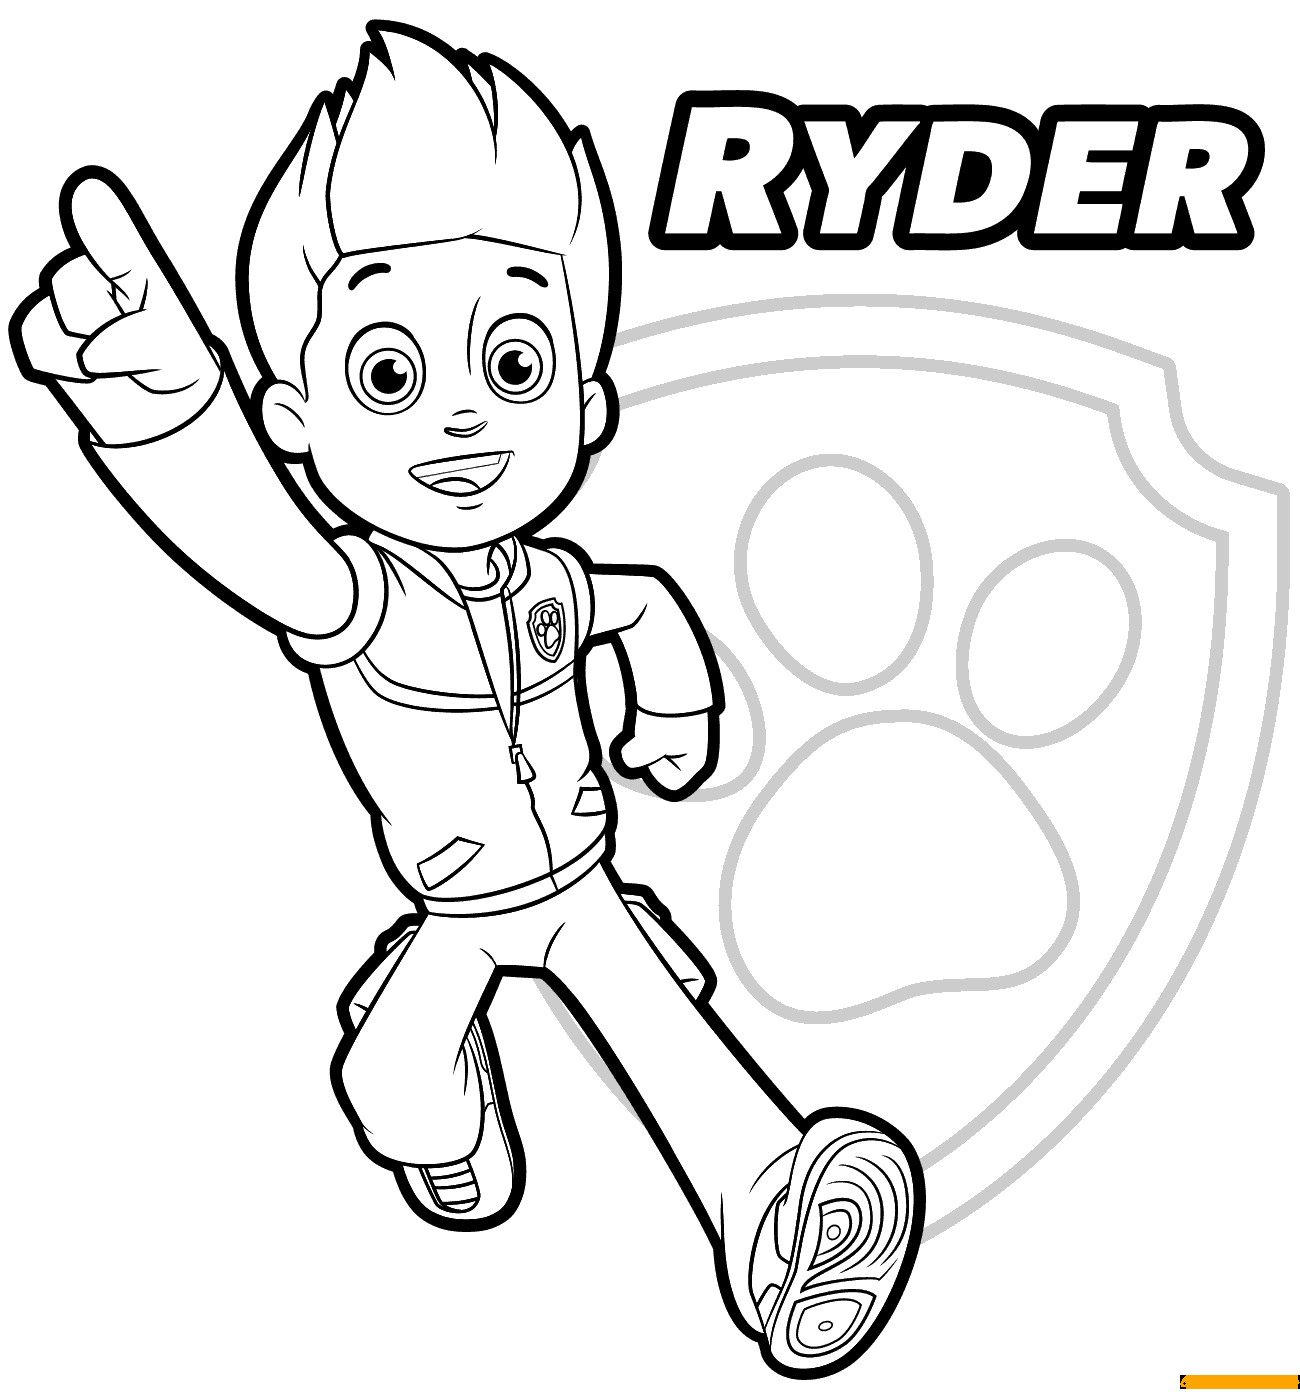 Paw Patrol Ausmalbilder Ryder  Paw Patrol Ryder 1 Coloring Page Free Coloring Pages line